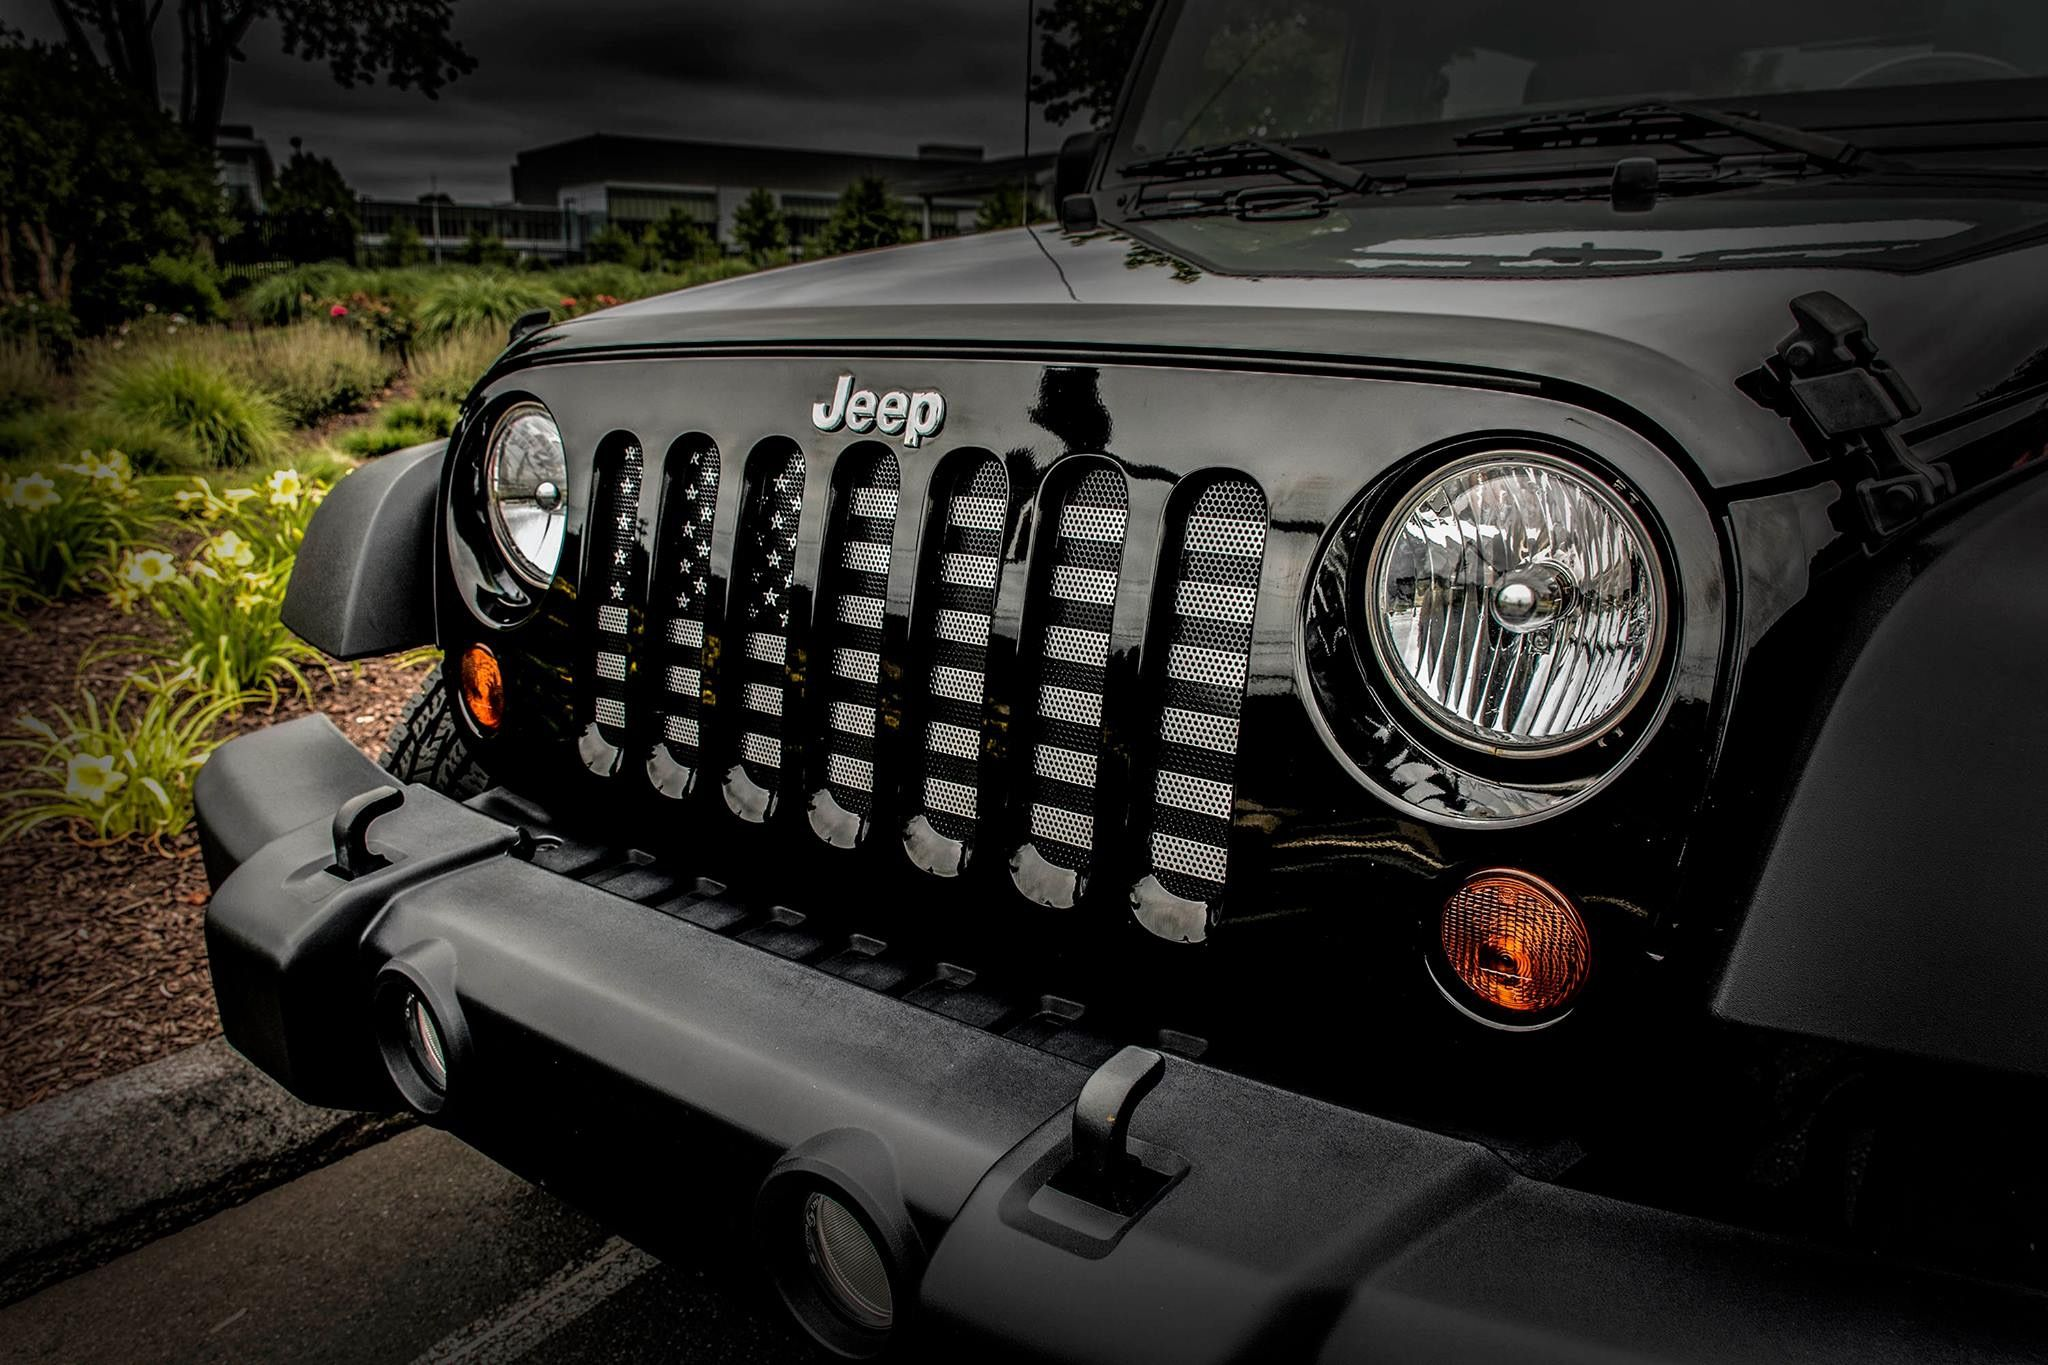 roll parts accessories for jeep console accessoriesjeep pin and driven dash vertically top storage wrangler